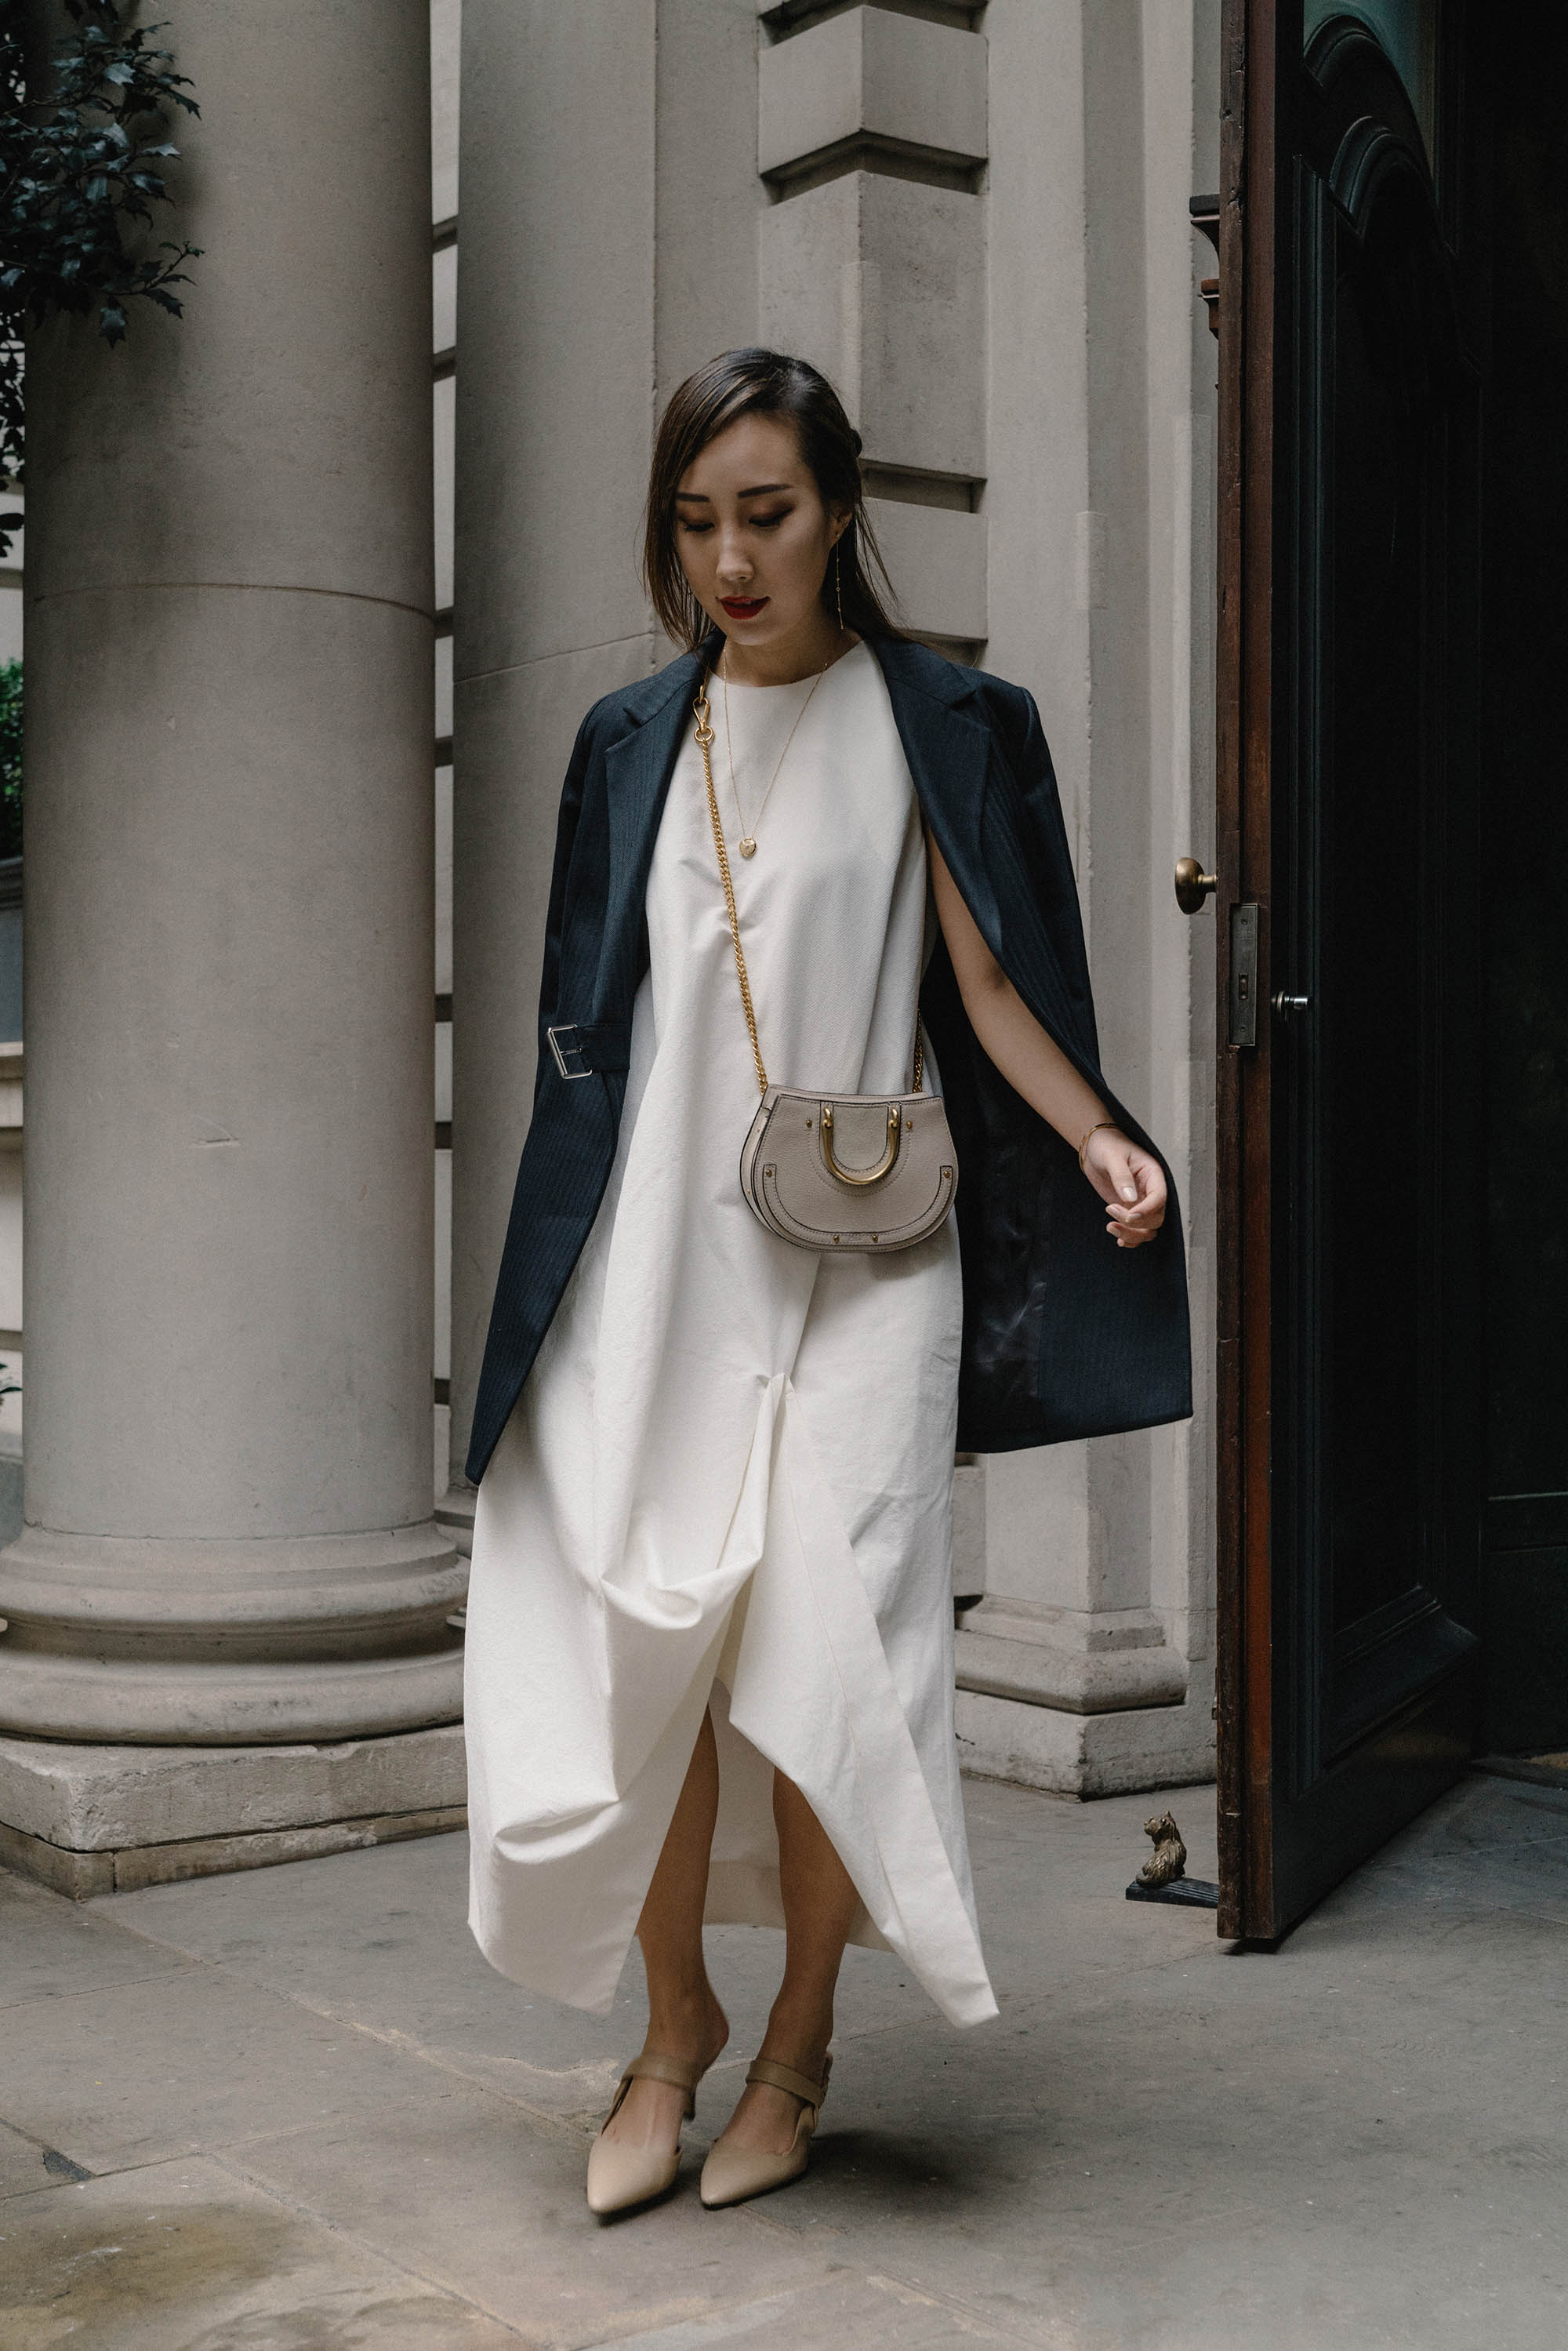 Helmut Lang Jacket , COS Dress,  The Row Heels ,  Chloe Bag